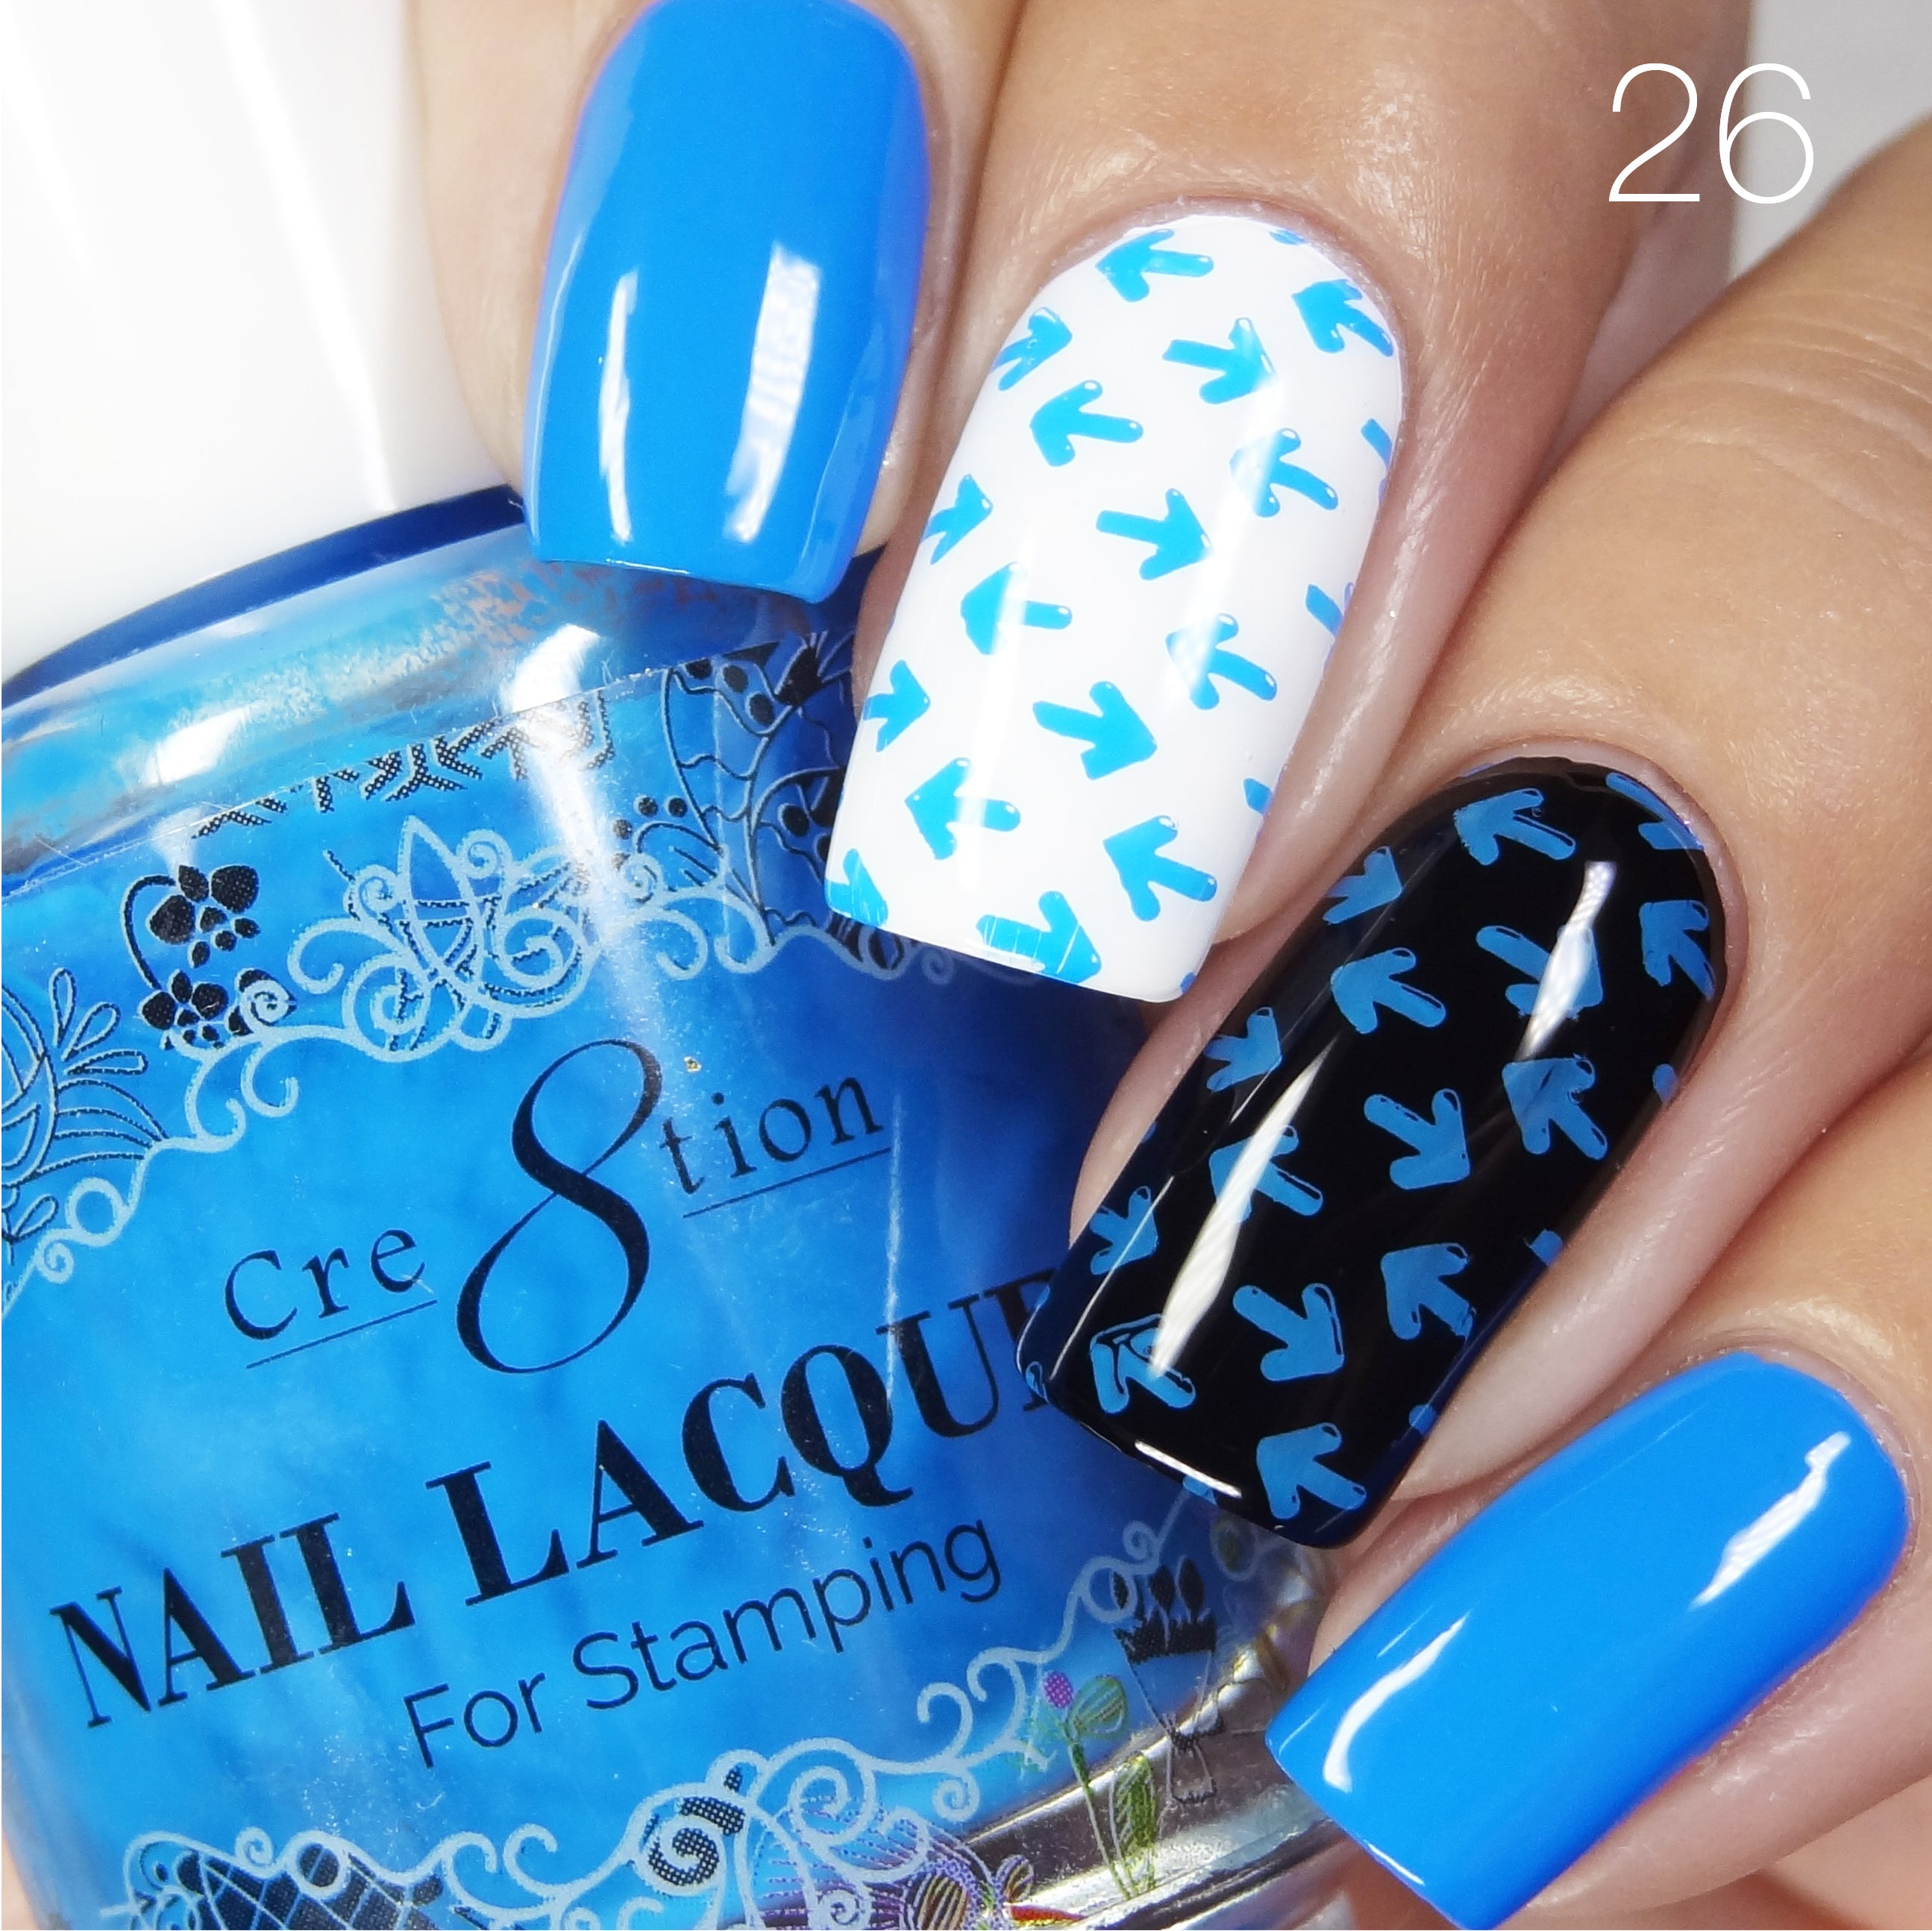 Cre8tion - Stamping Nail Art Lacquer 26